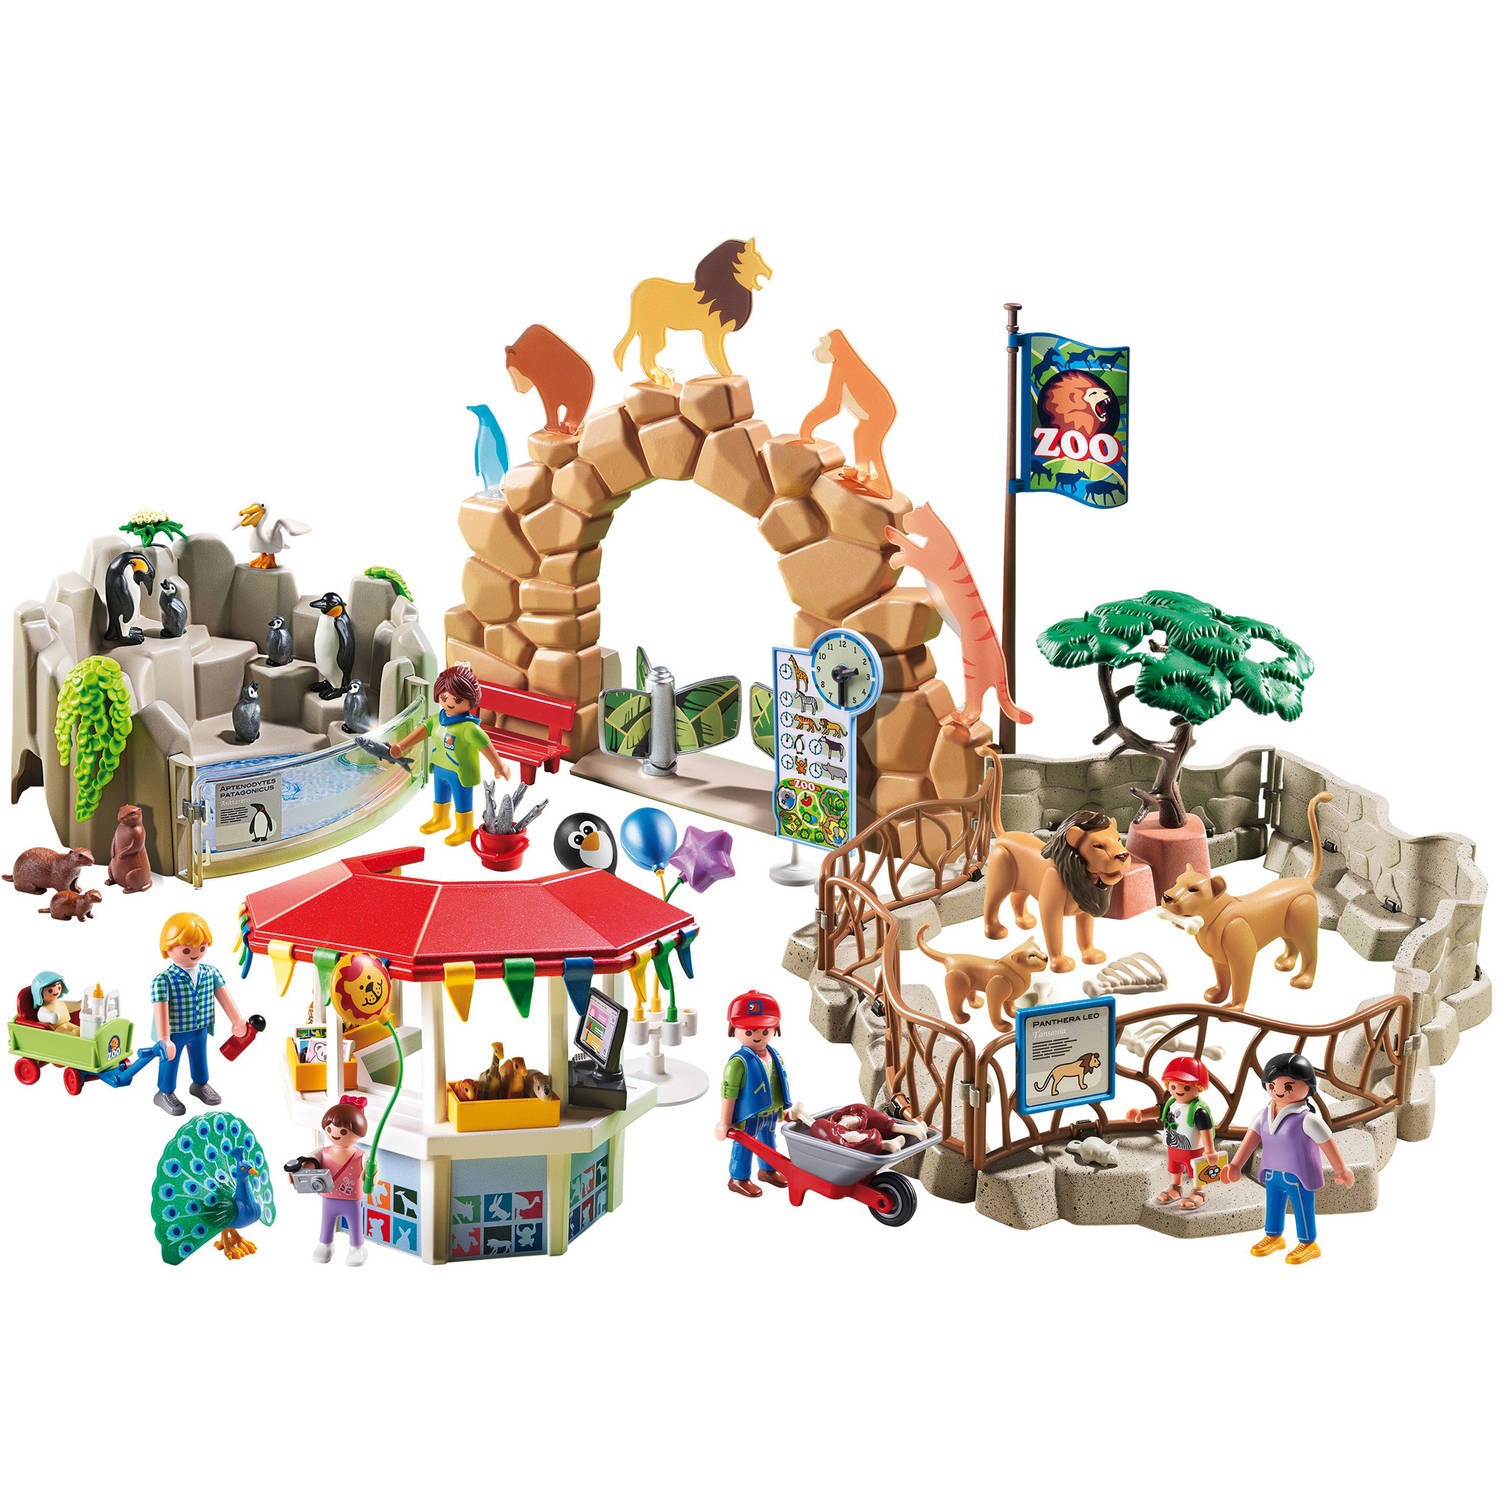 Image of: Figures Walmart Playmobil Large City Zoo Walmartcom